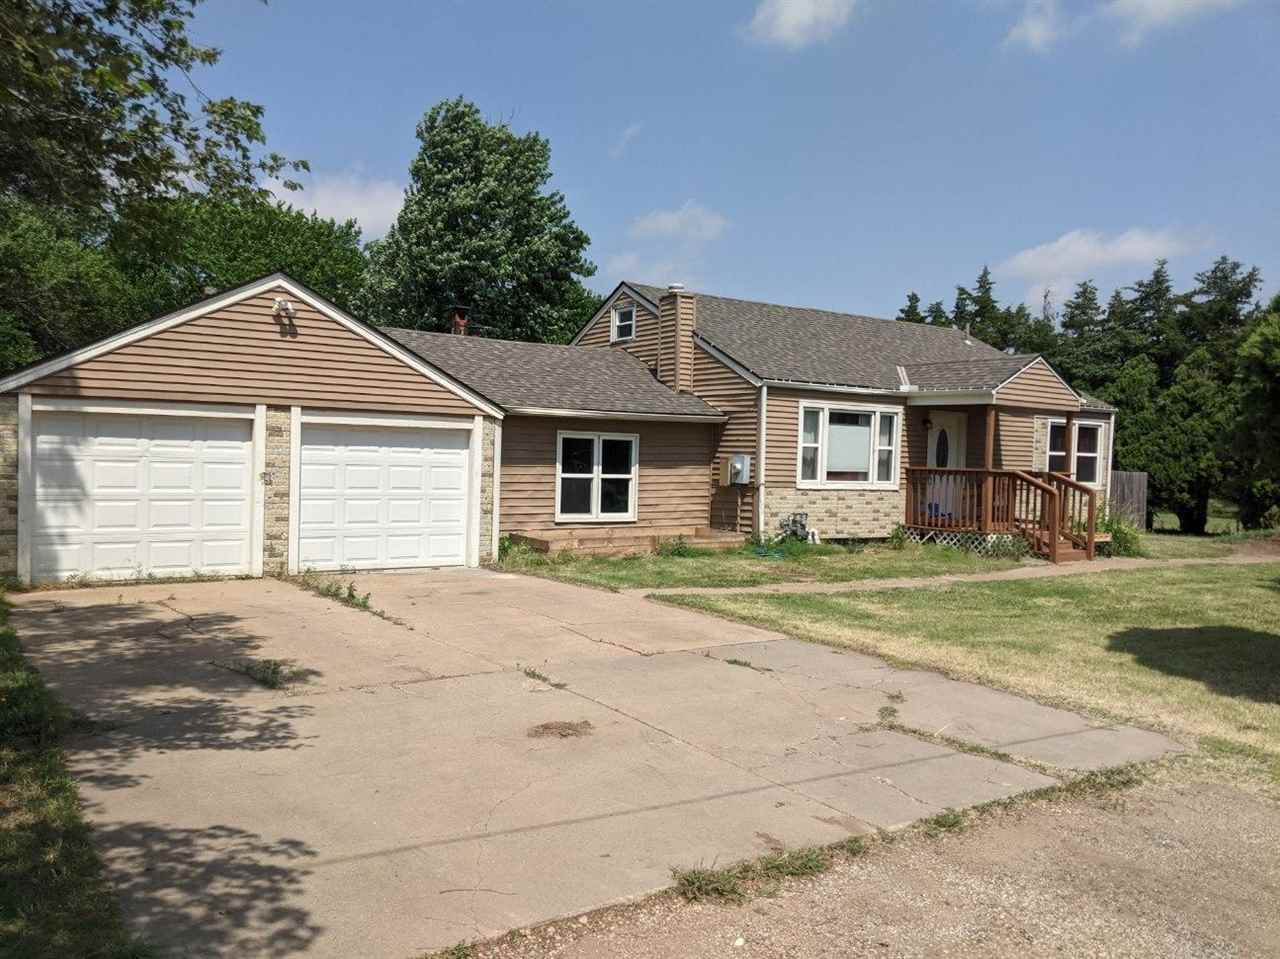 Small Town Living approx 25 miles to/from Wichita -  5 Bedroom, 3 bath, Main Floor Living Room - PLU